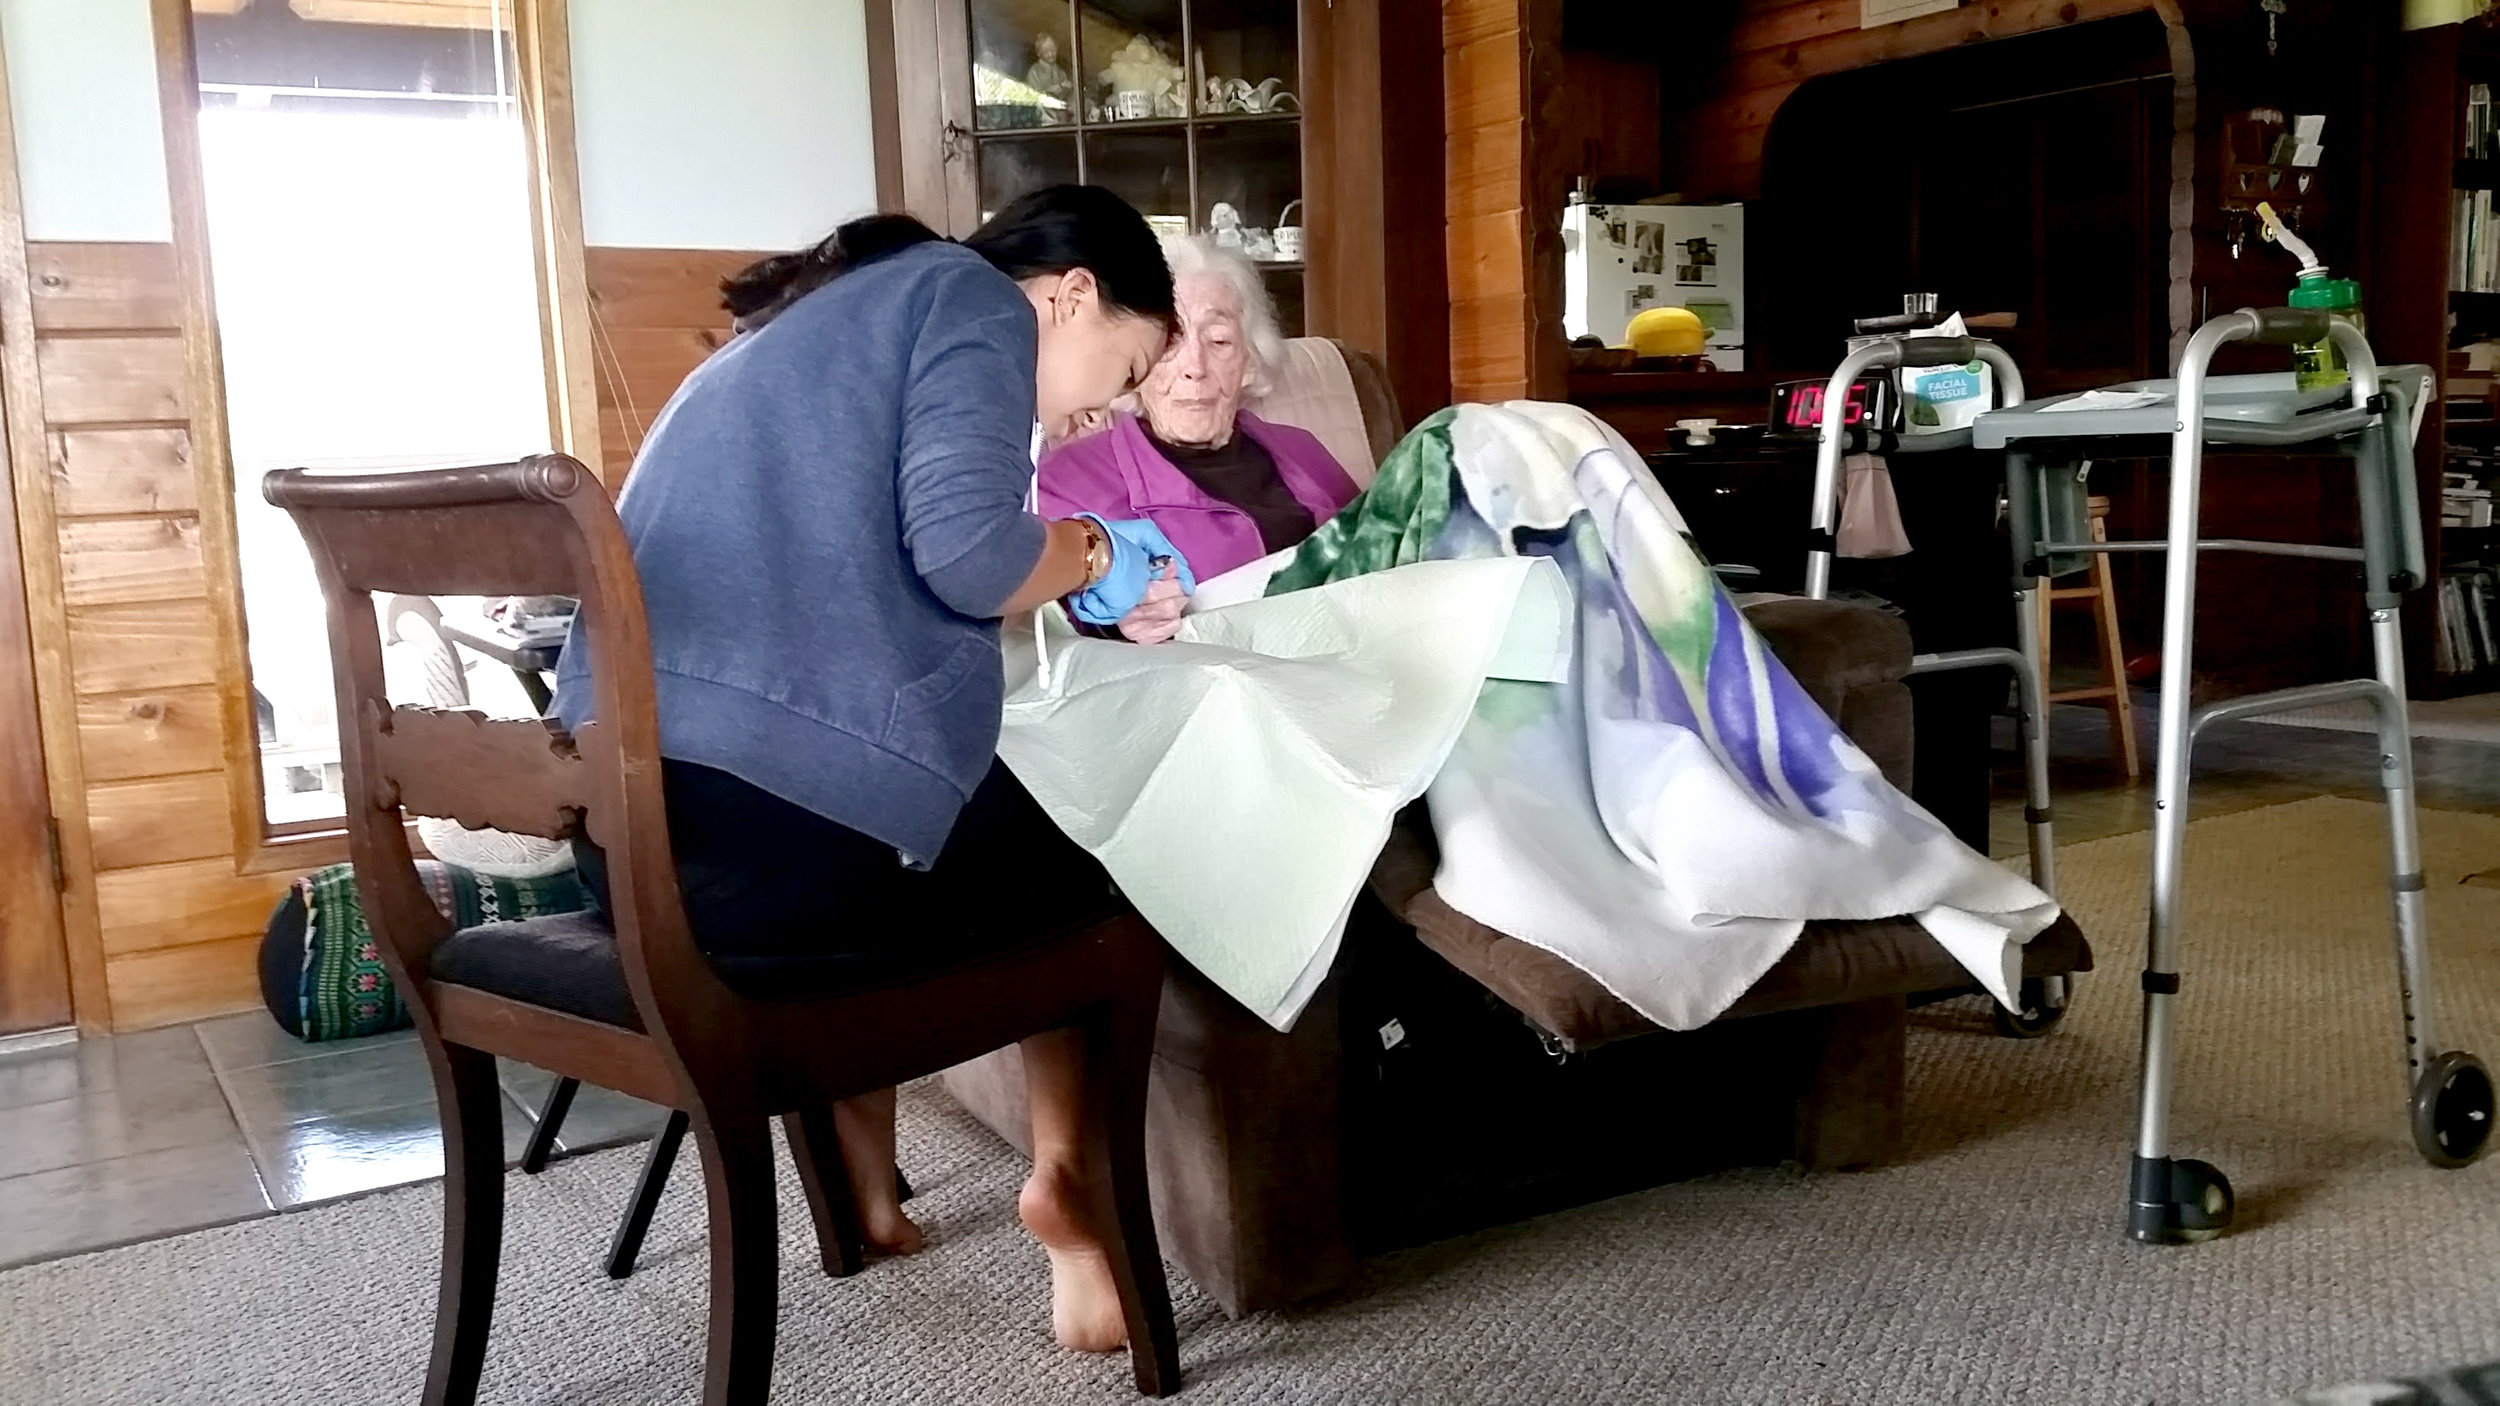 A North Hawaii Hospice patient receiving at home care. PHOTO: North Hawaii Hospice